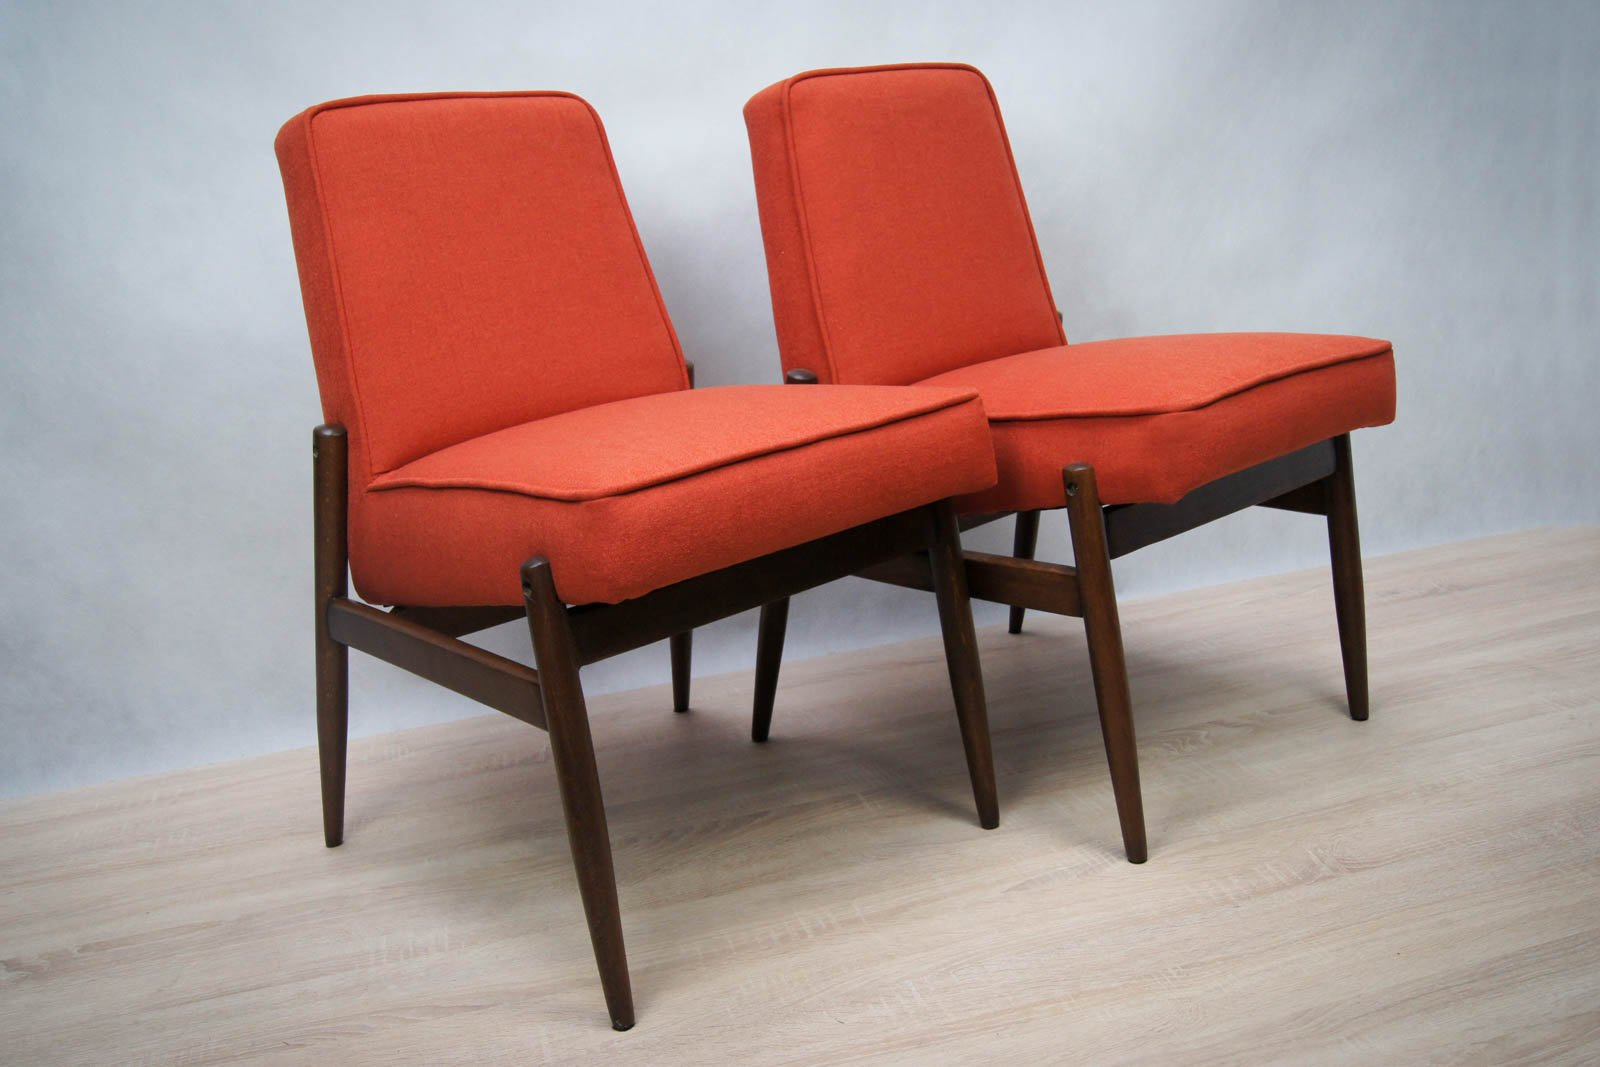 Chairs from zamo furniture factory 1960s set of 2 for for Furniture factory